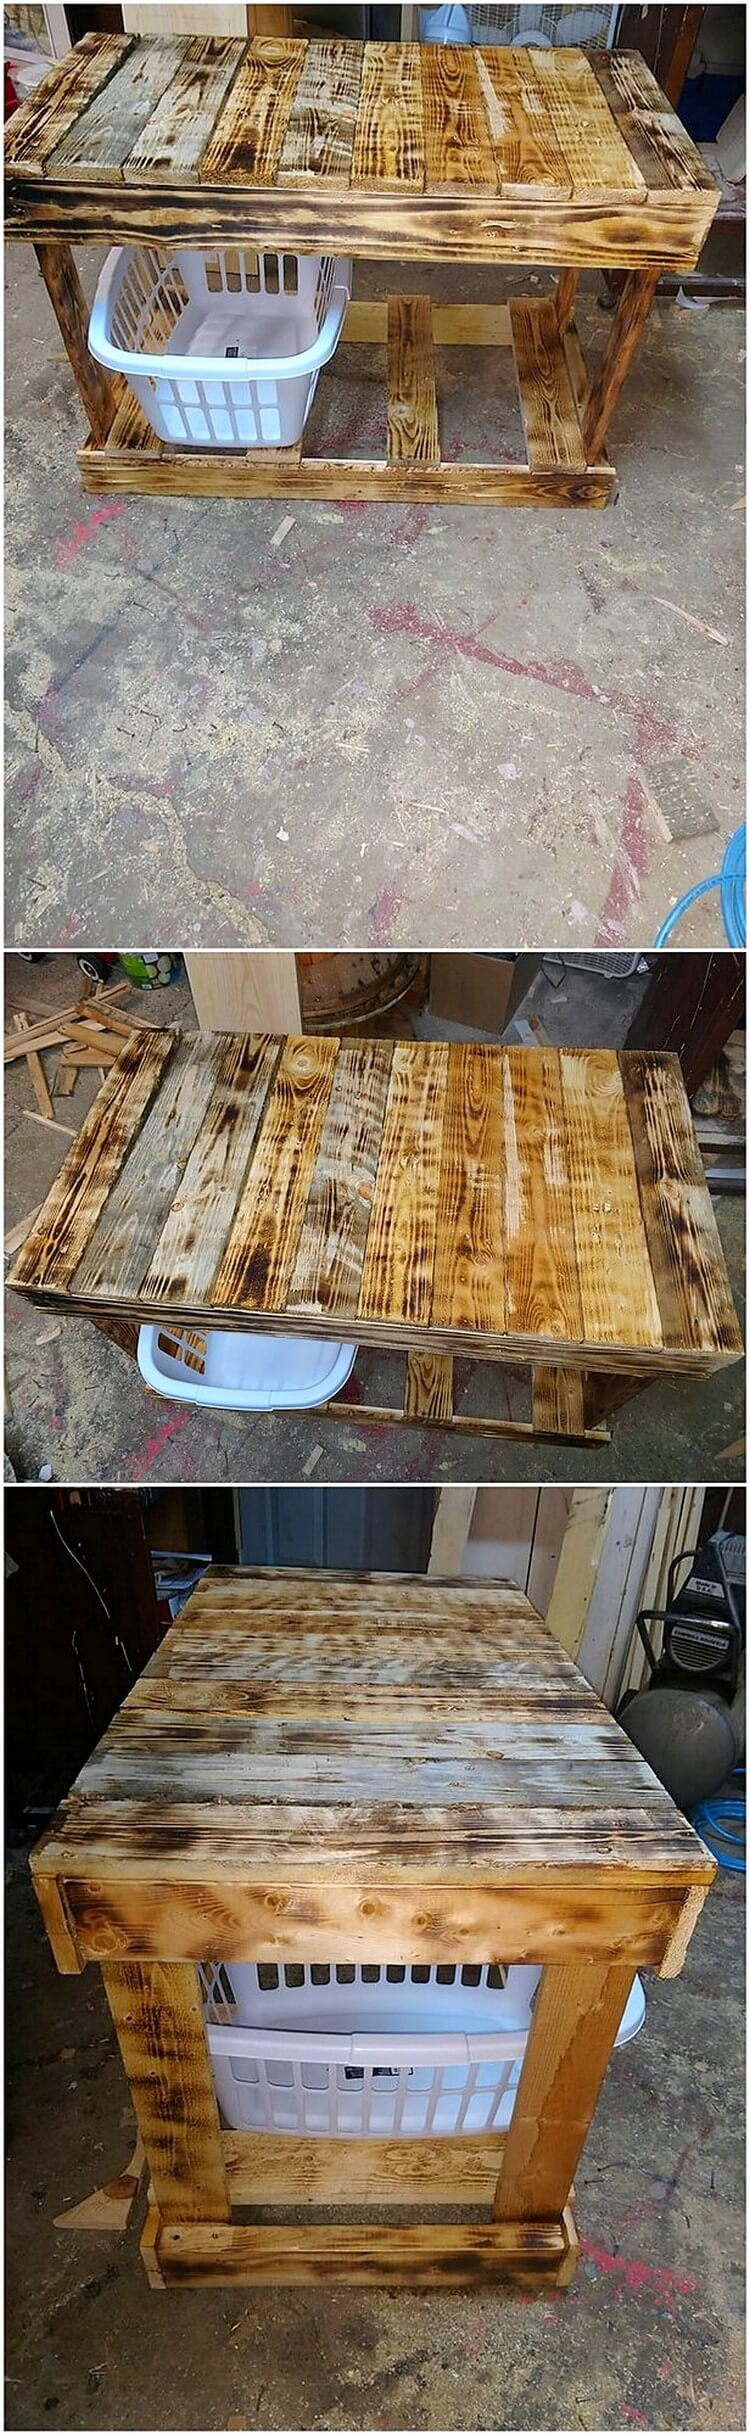 Pallet Table with Laundry Baskets